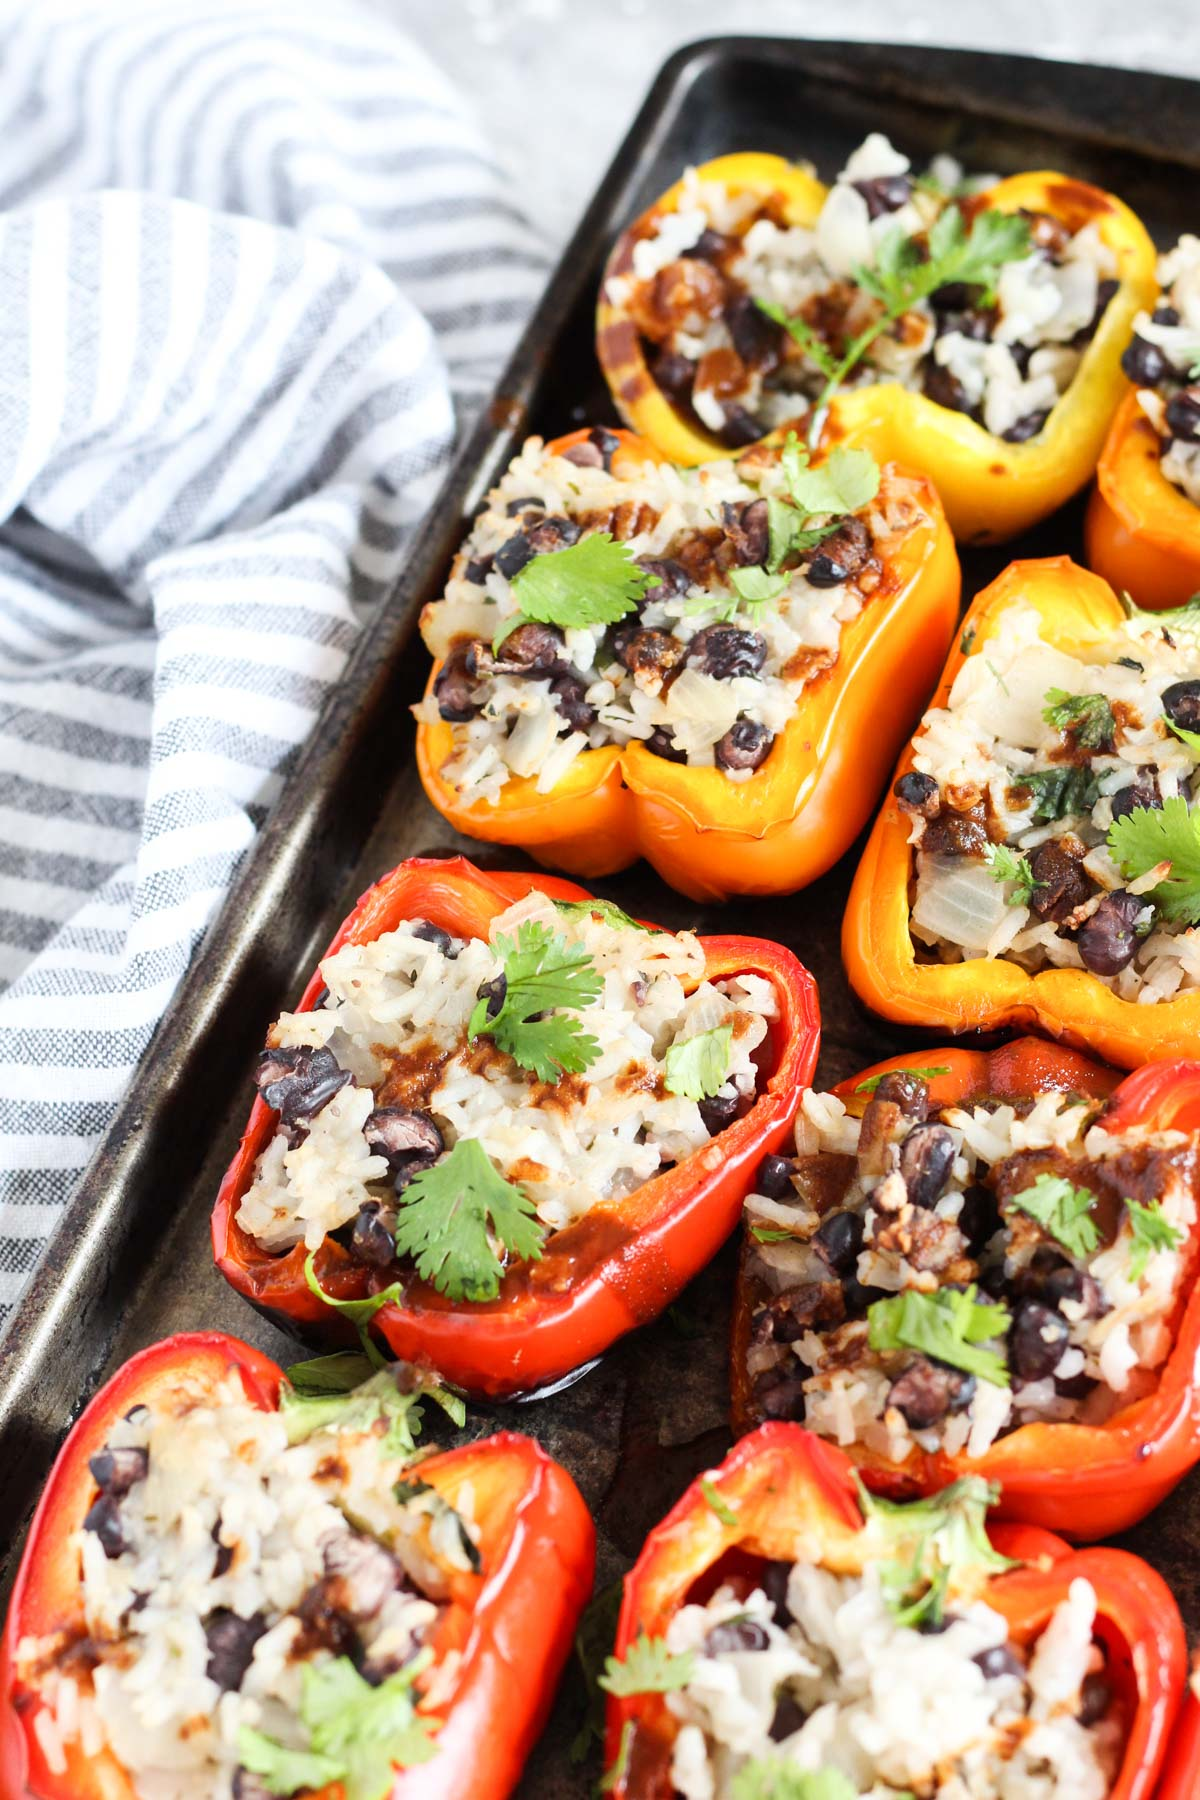 Grilled stuffed peppers lined up on a baking sheet.